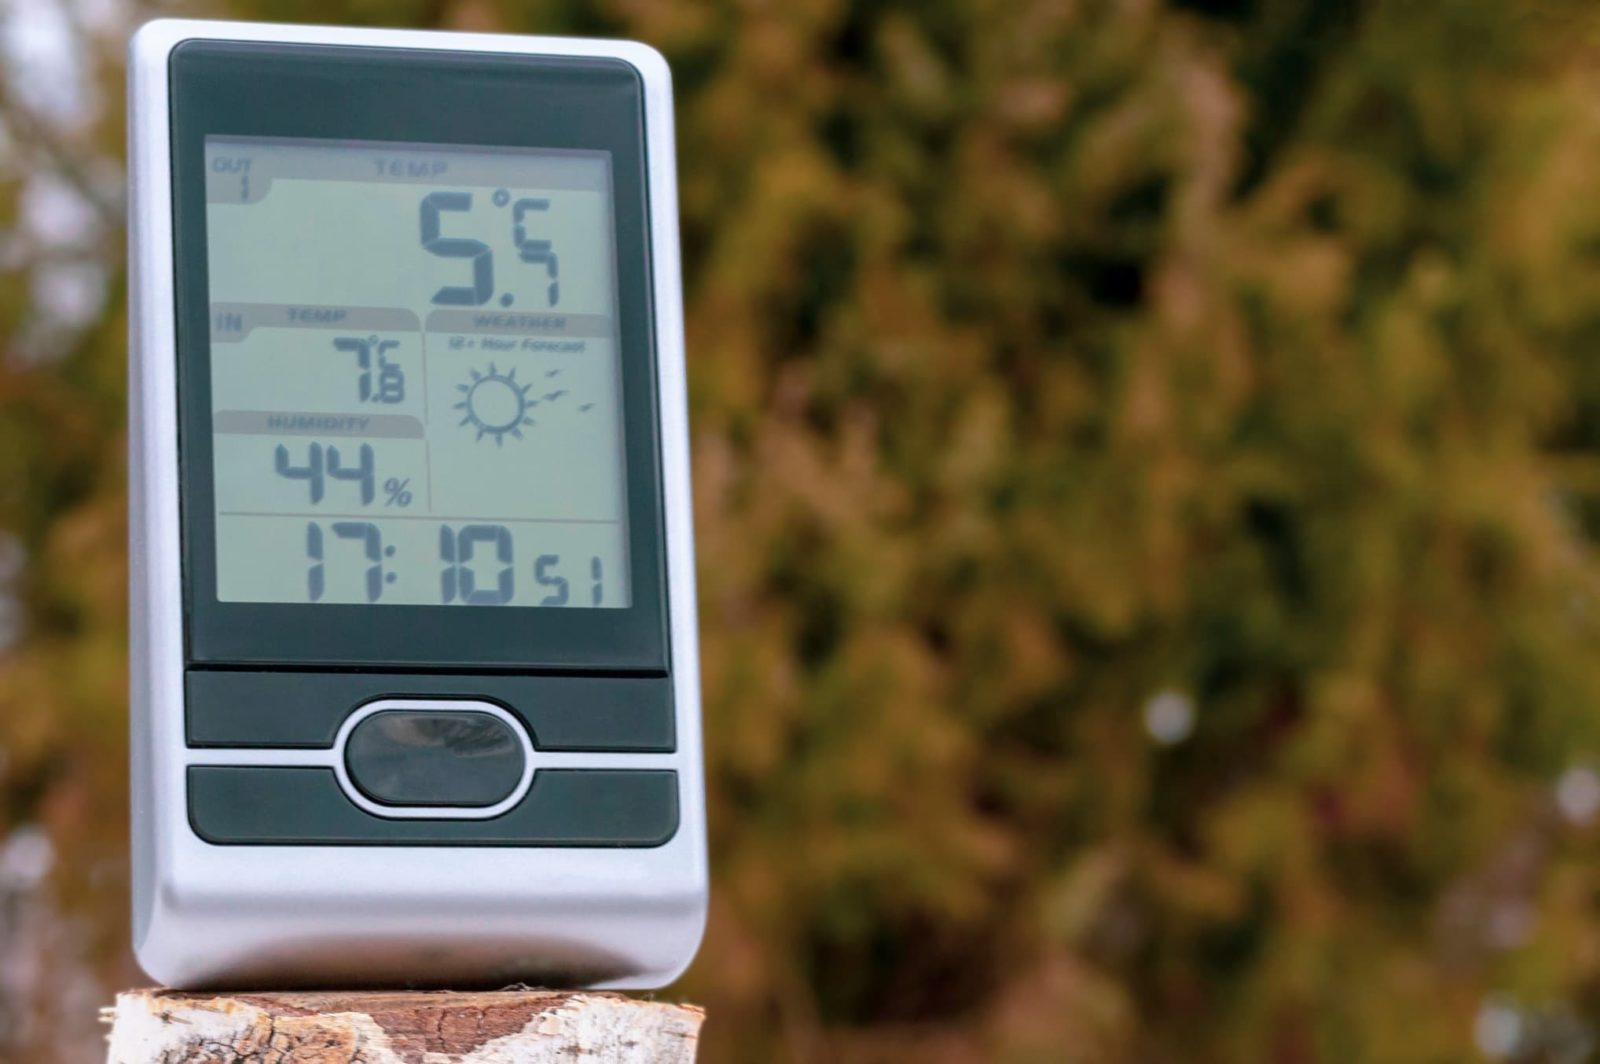 home weather unit sat on a log with trees in the background